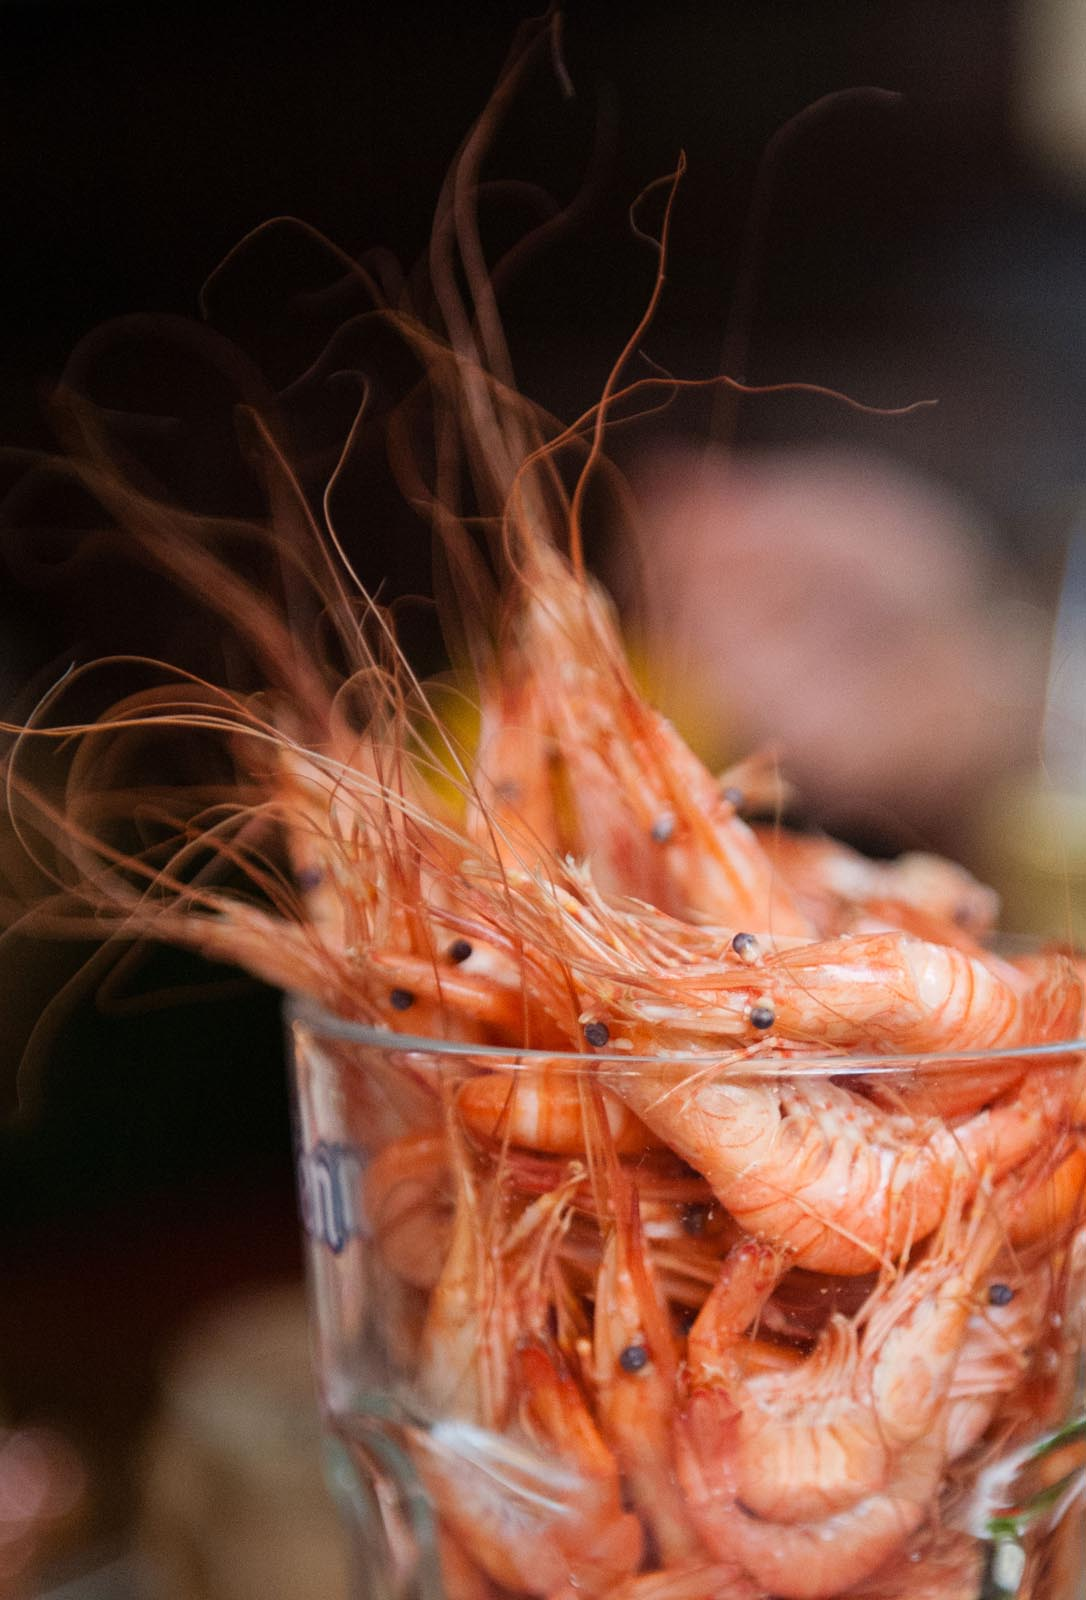 Locally caught shrimps, served in a pint glass at Cronin's Pub, Crosshaven.